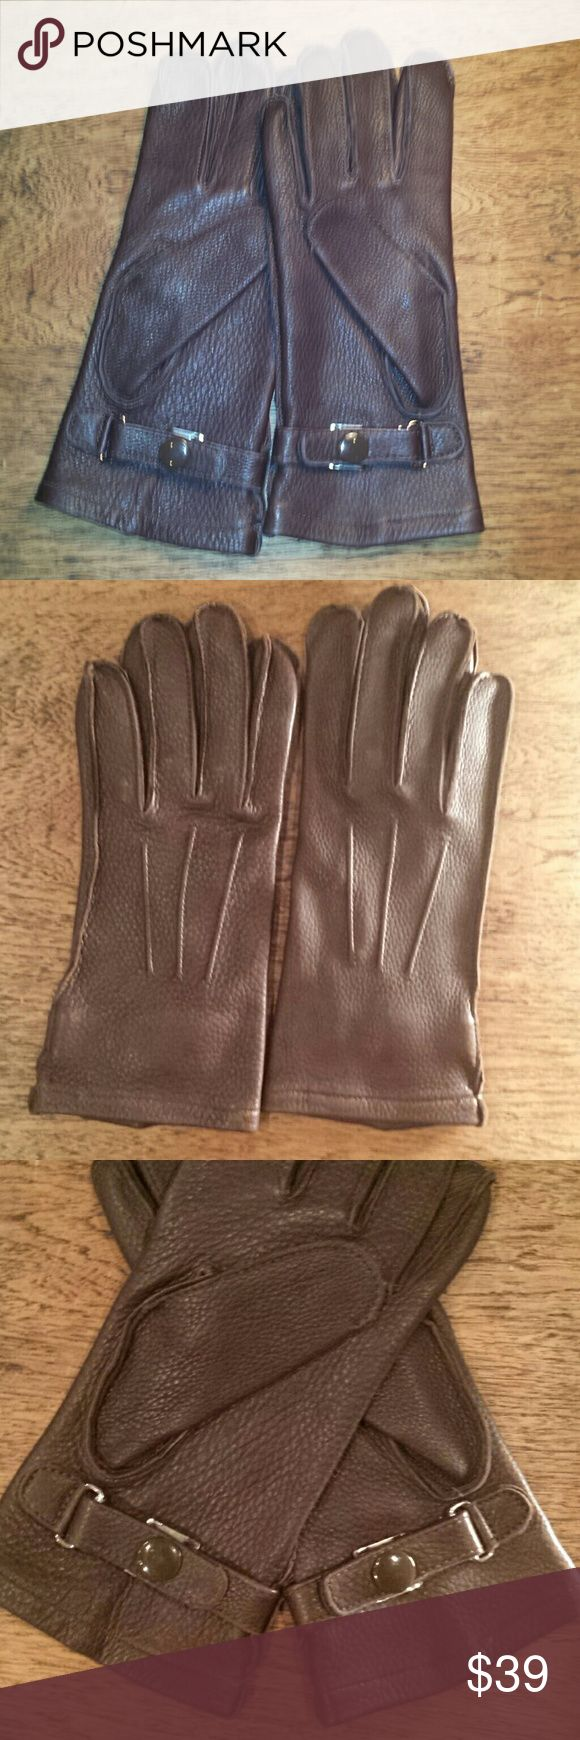 Chocolate brown deerskin gloves M Ladies M STA-SOFT deerskin gloves.  Excellent condition!   Lining 55% wool; 25% raciin; 20% nylon.  Made in the USA.  Dry clean only. STA-SOFT  Accessories Gloves & Mittens